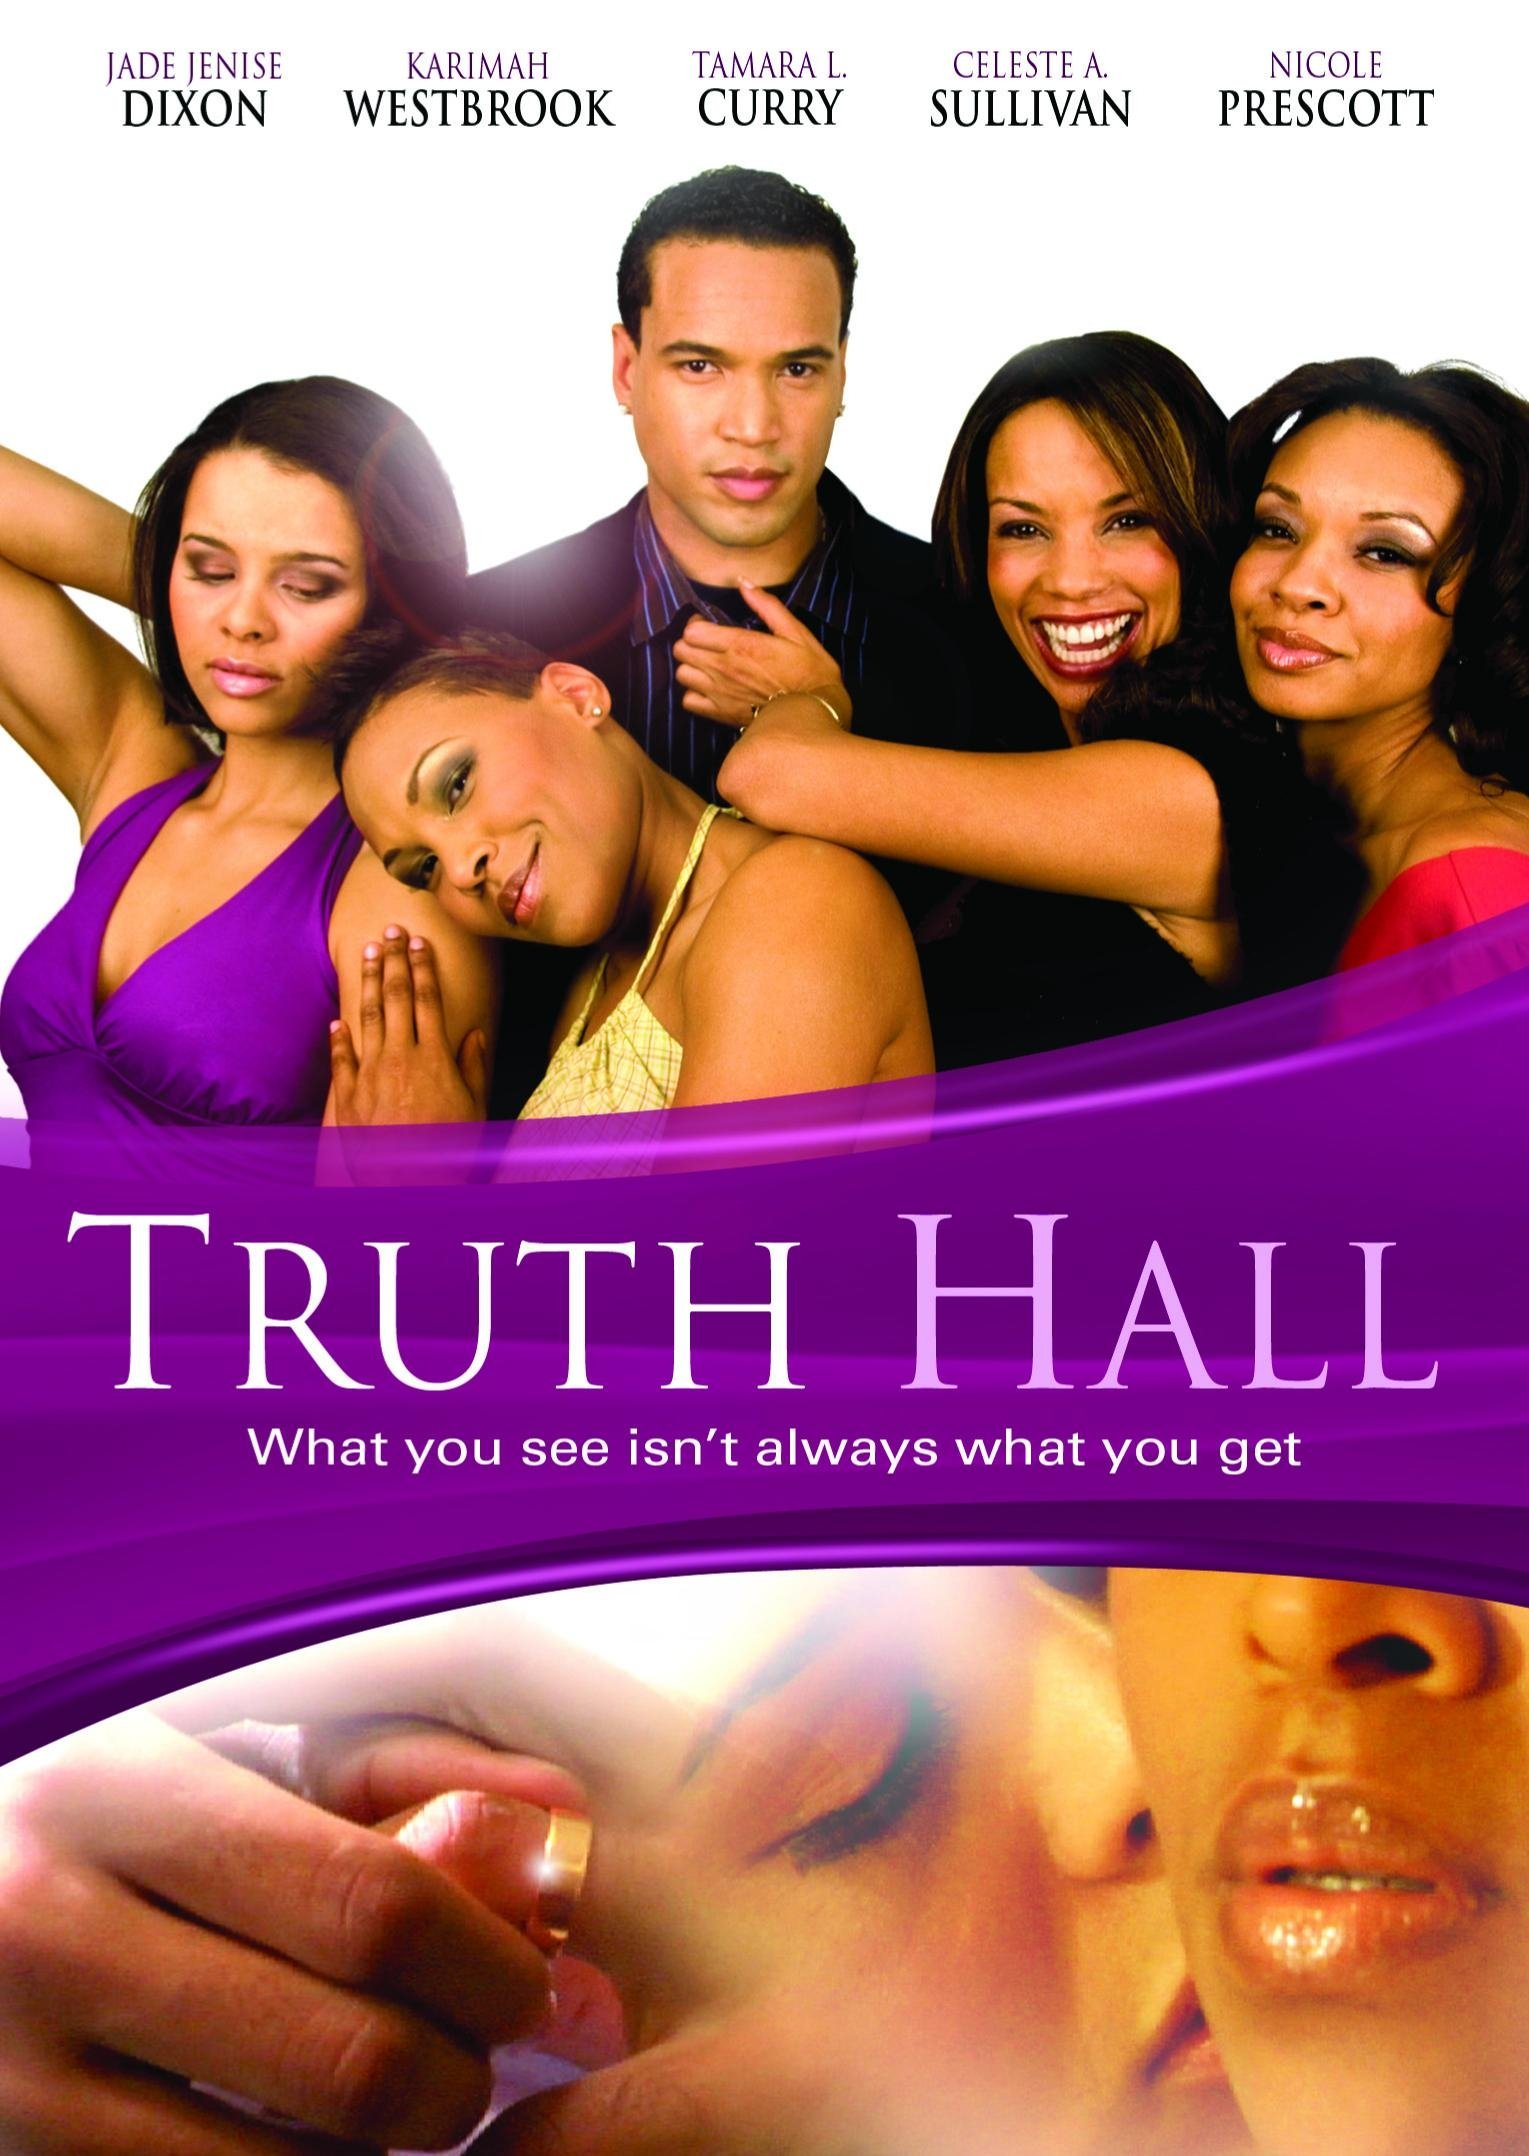 DVD : Truth Hall (Dolby, AC-3, Widescreen)